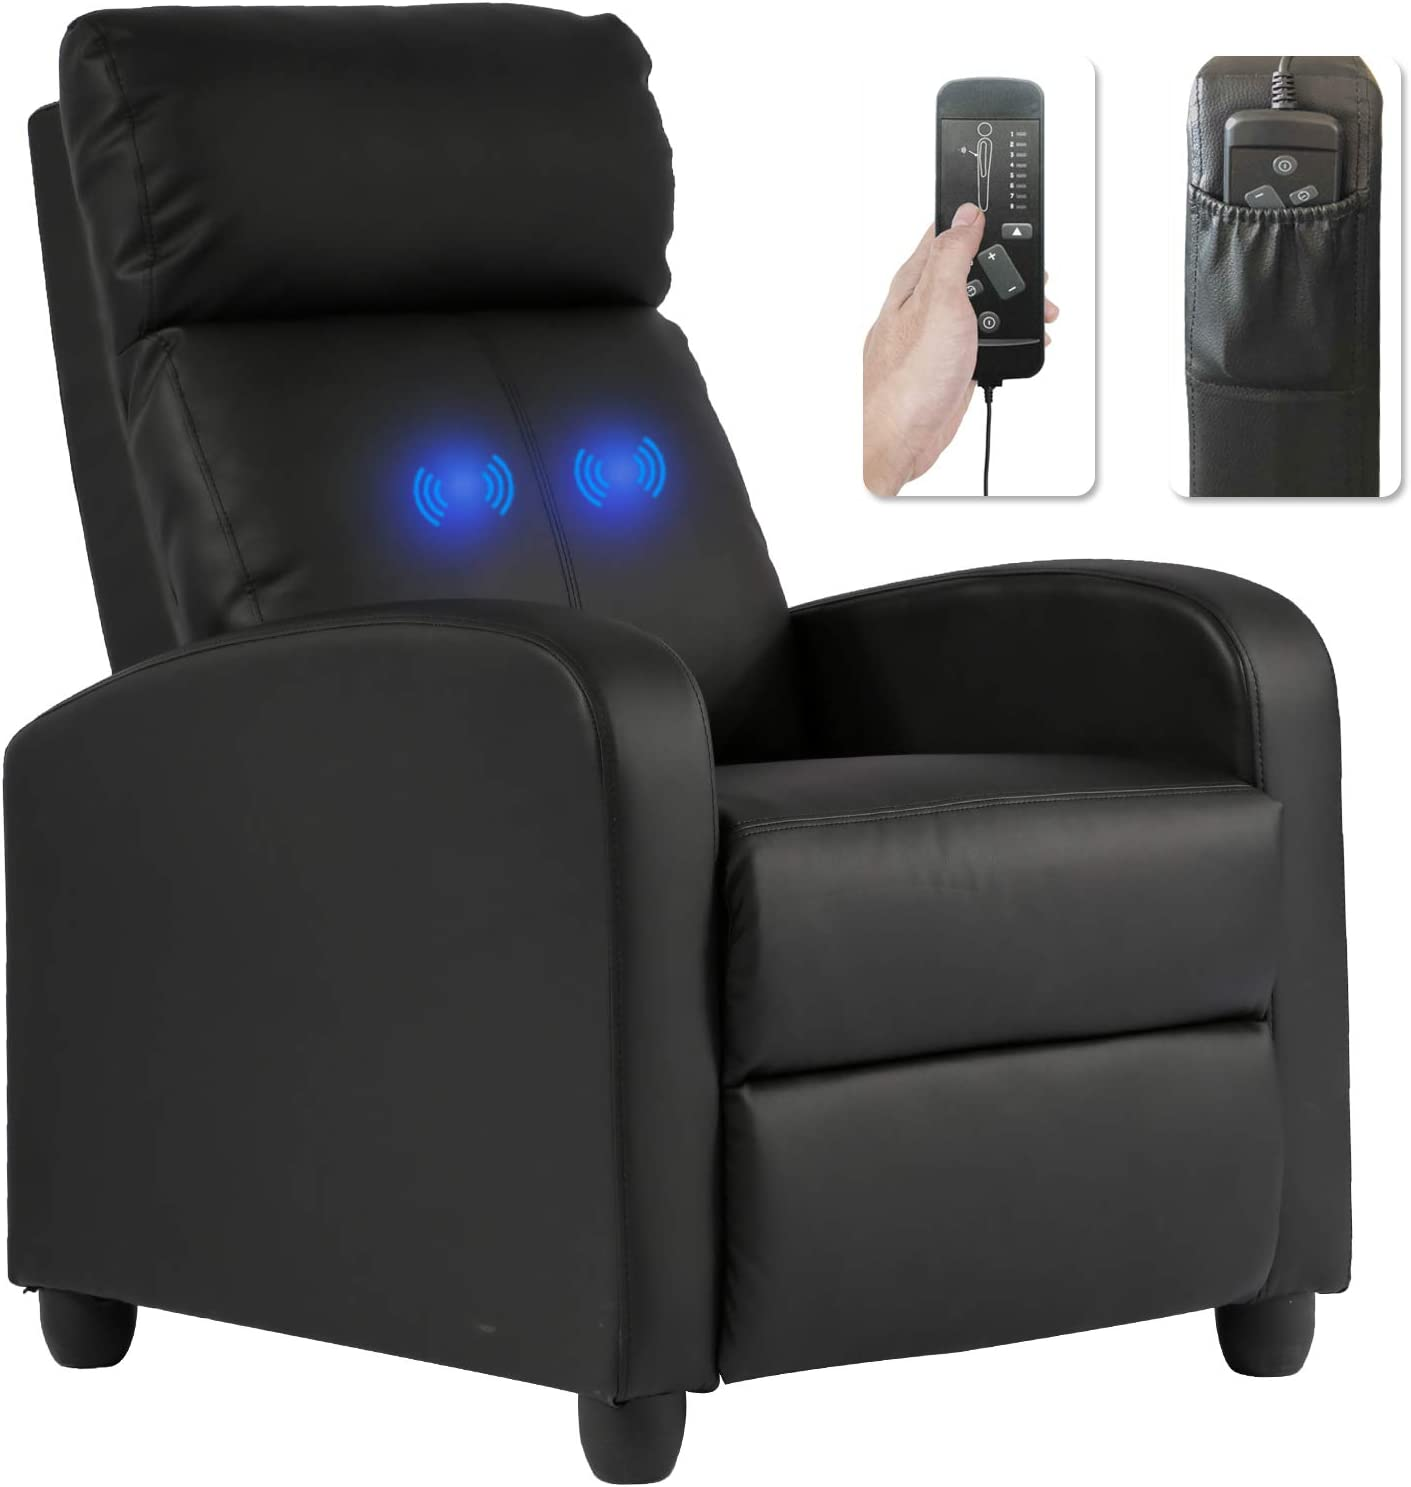 Recliner Chair for Living Room Massage Recliner Sofa Reading Chair Winback Single Sofa Home Theater Seating Modern Reclining Chair Easy Lounge with PU Leather Padded Seat Backrest: Furniture & Decor